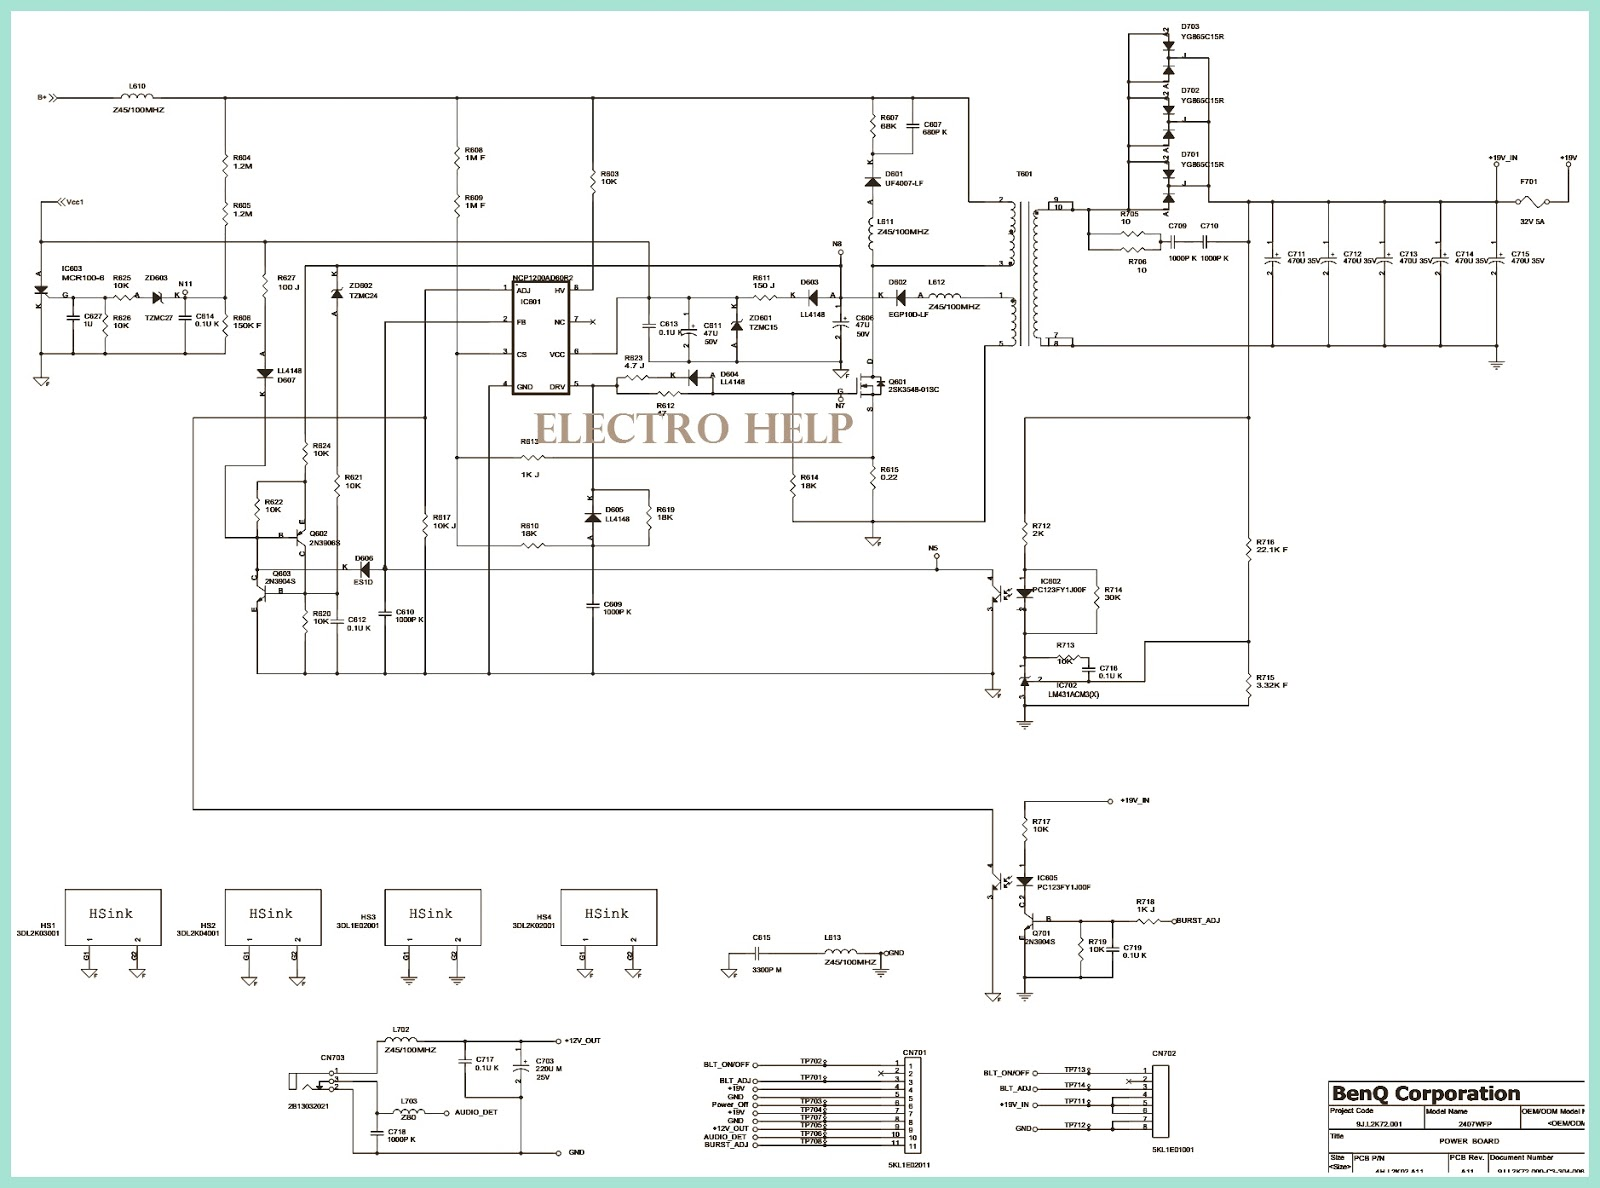 DELL 2407 and BenQ LCD MONITORS – POWER SUPPLY REGULATOR BOARD SCHEMATIC | Electro help